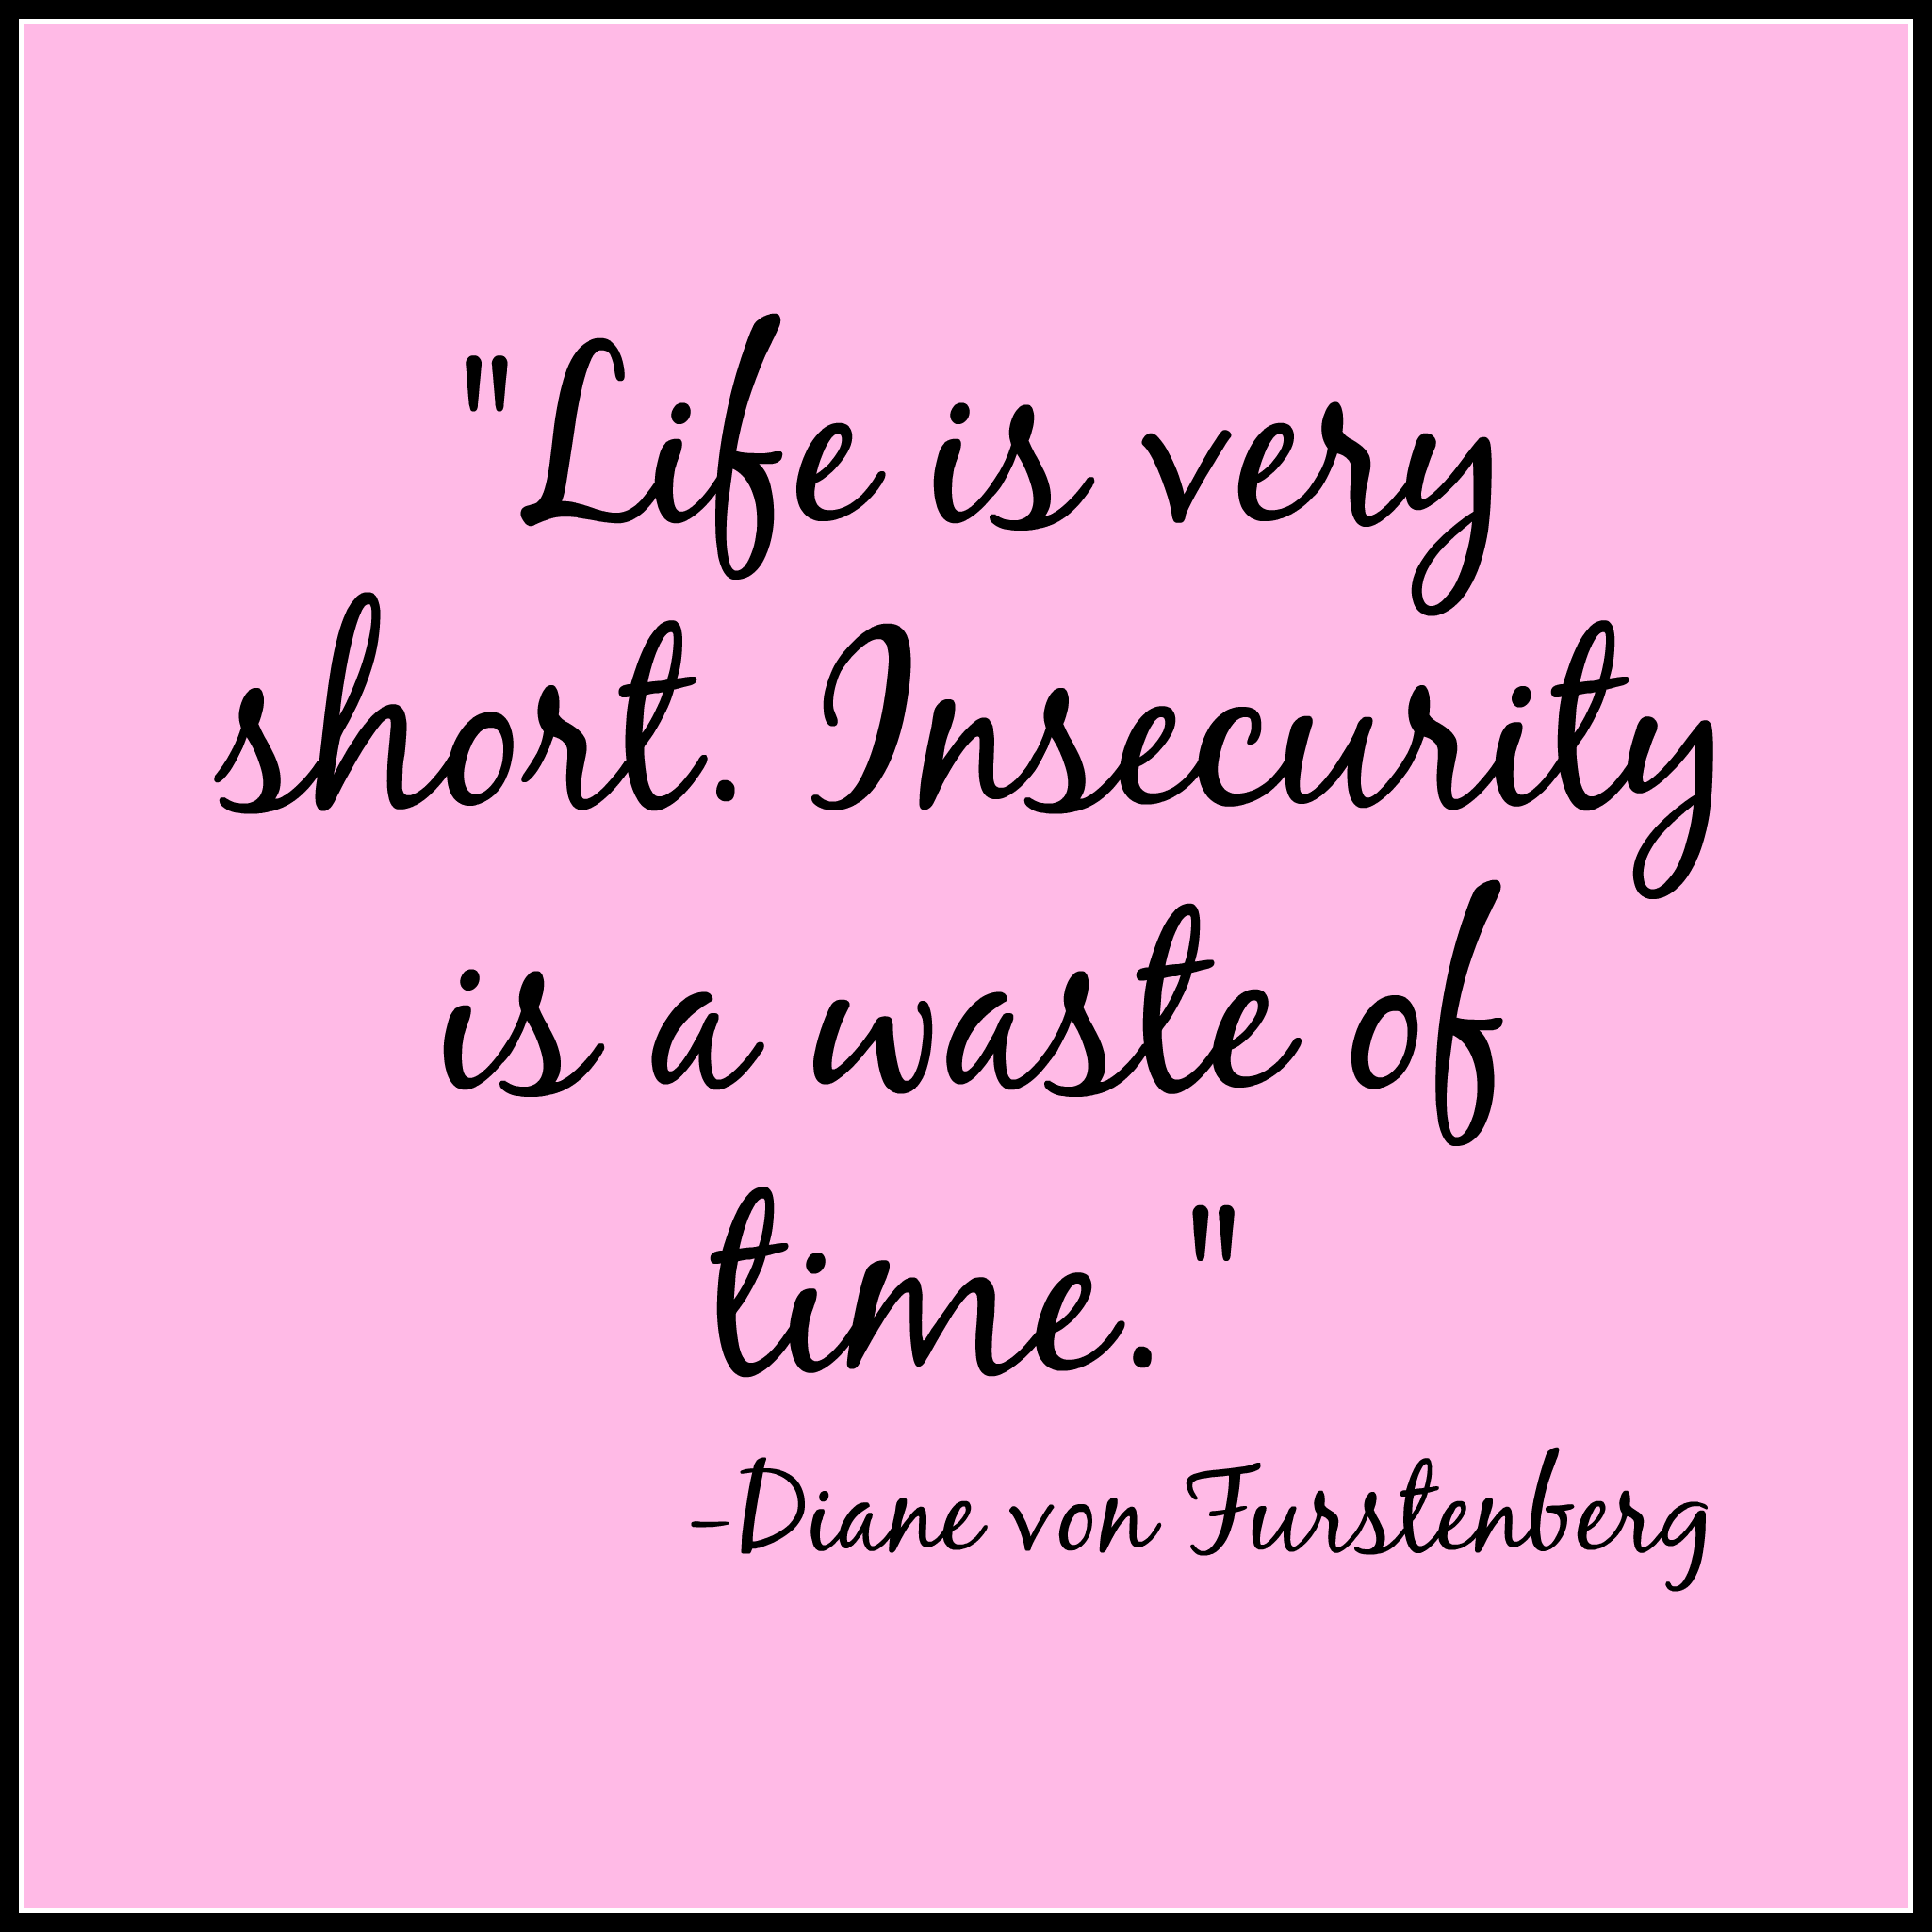 motivational quotes for women - life is short. insecurity is a waste of time - diane von furstenberg quotes